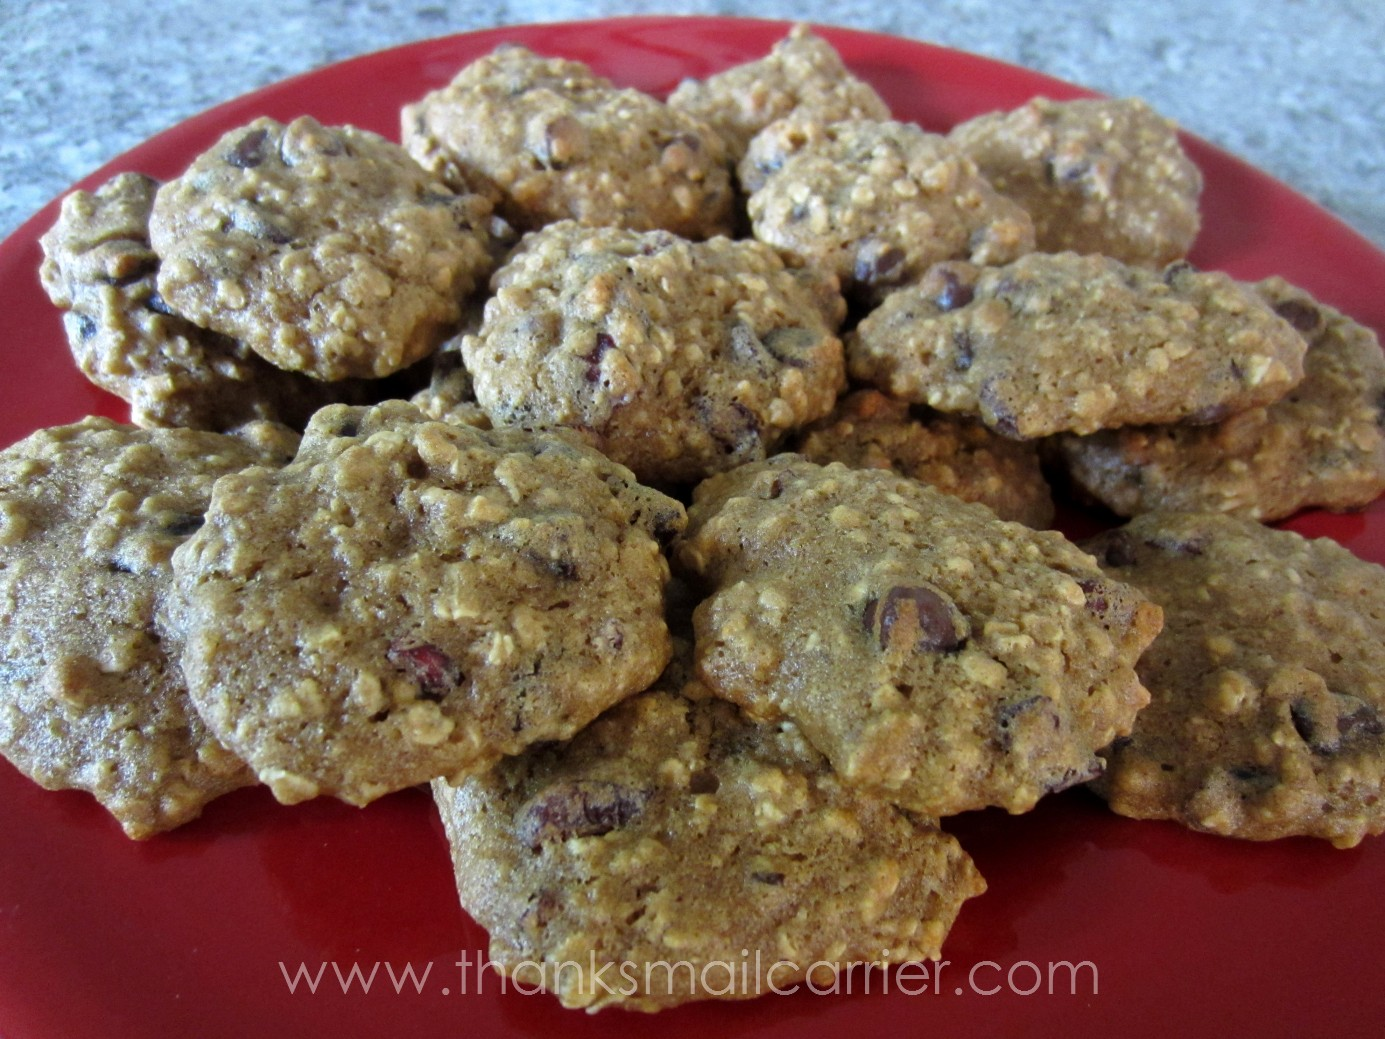 WOULD LOVE TO TRY THE FRUIT AND NUT TRAIL MIX COOKIES. I THINK THE ...